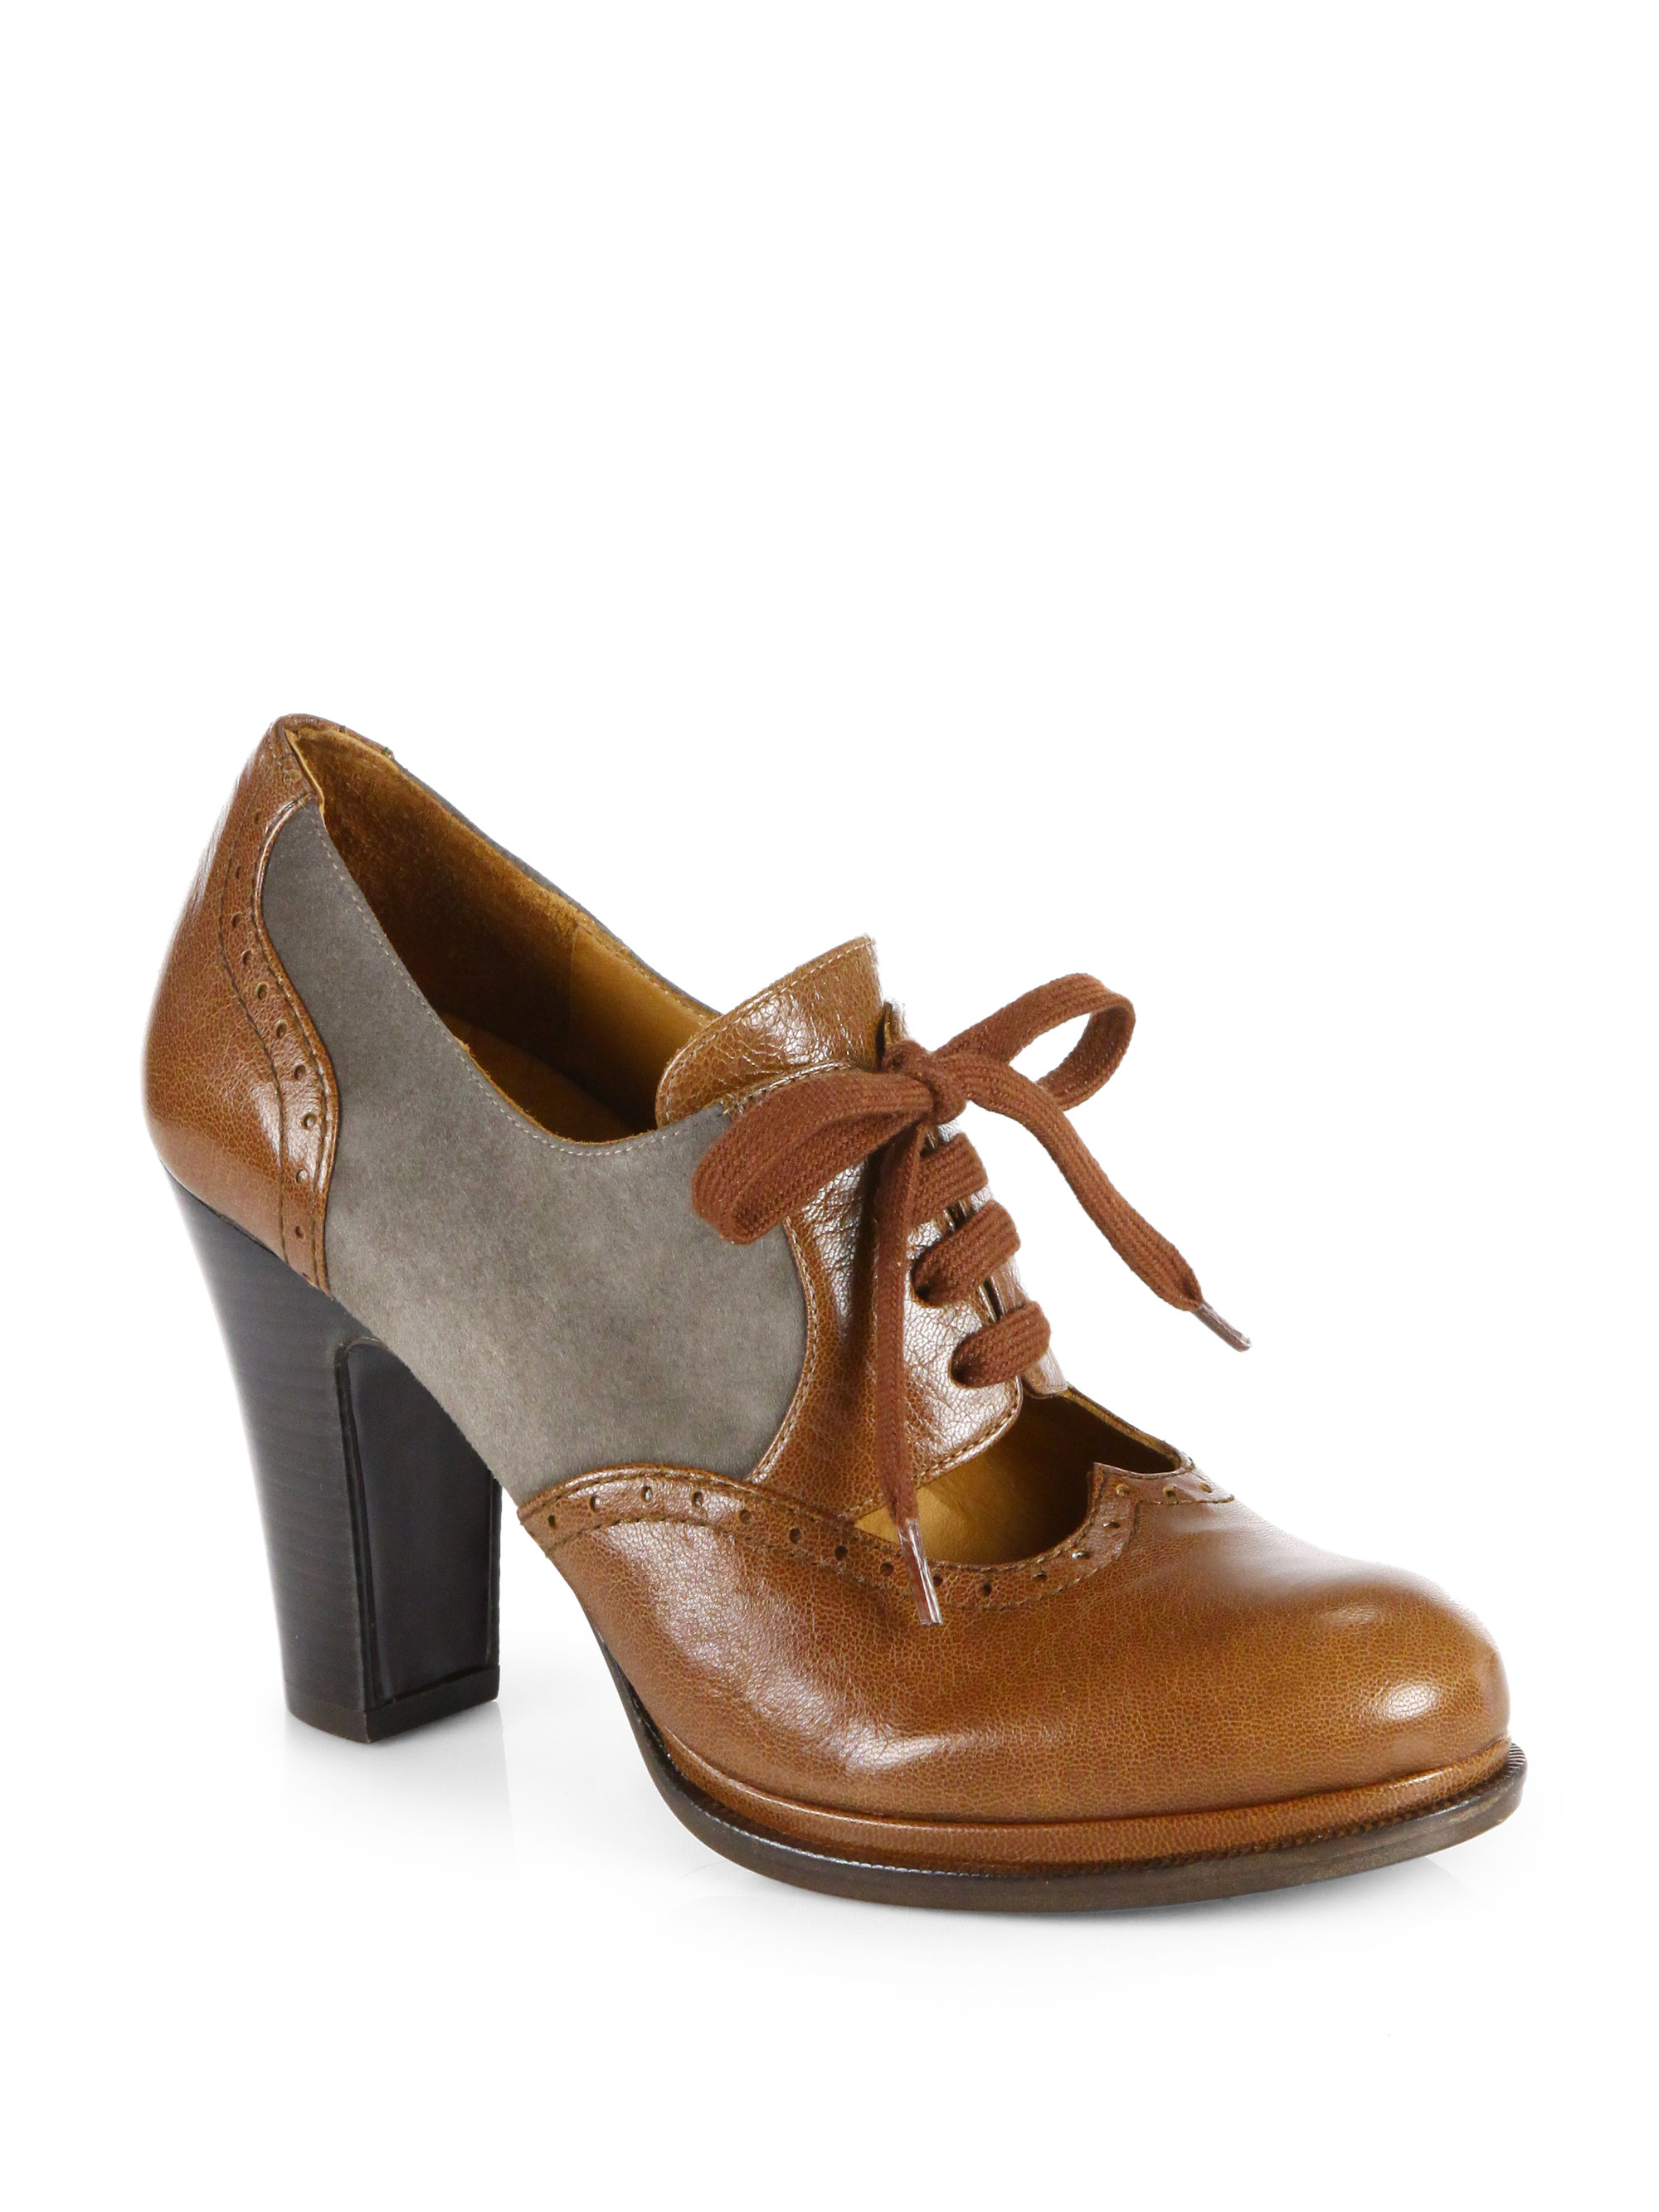 Chie mihara Brizna Leather Suede Laceup Oxford Pumps in Brown  Lyst